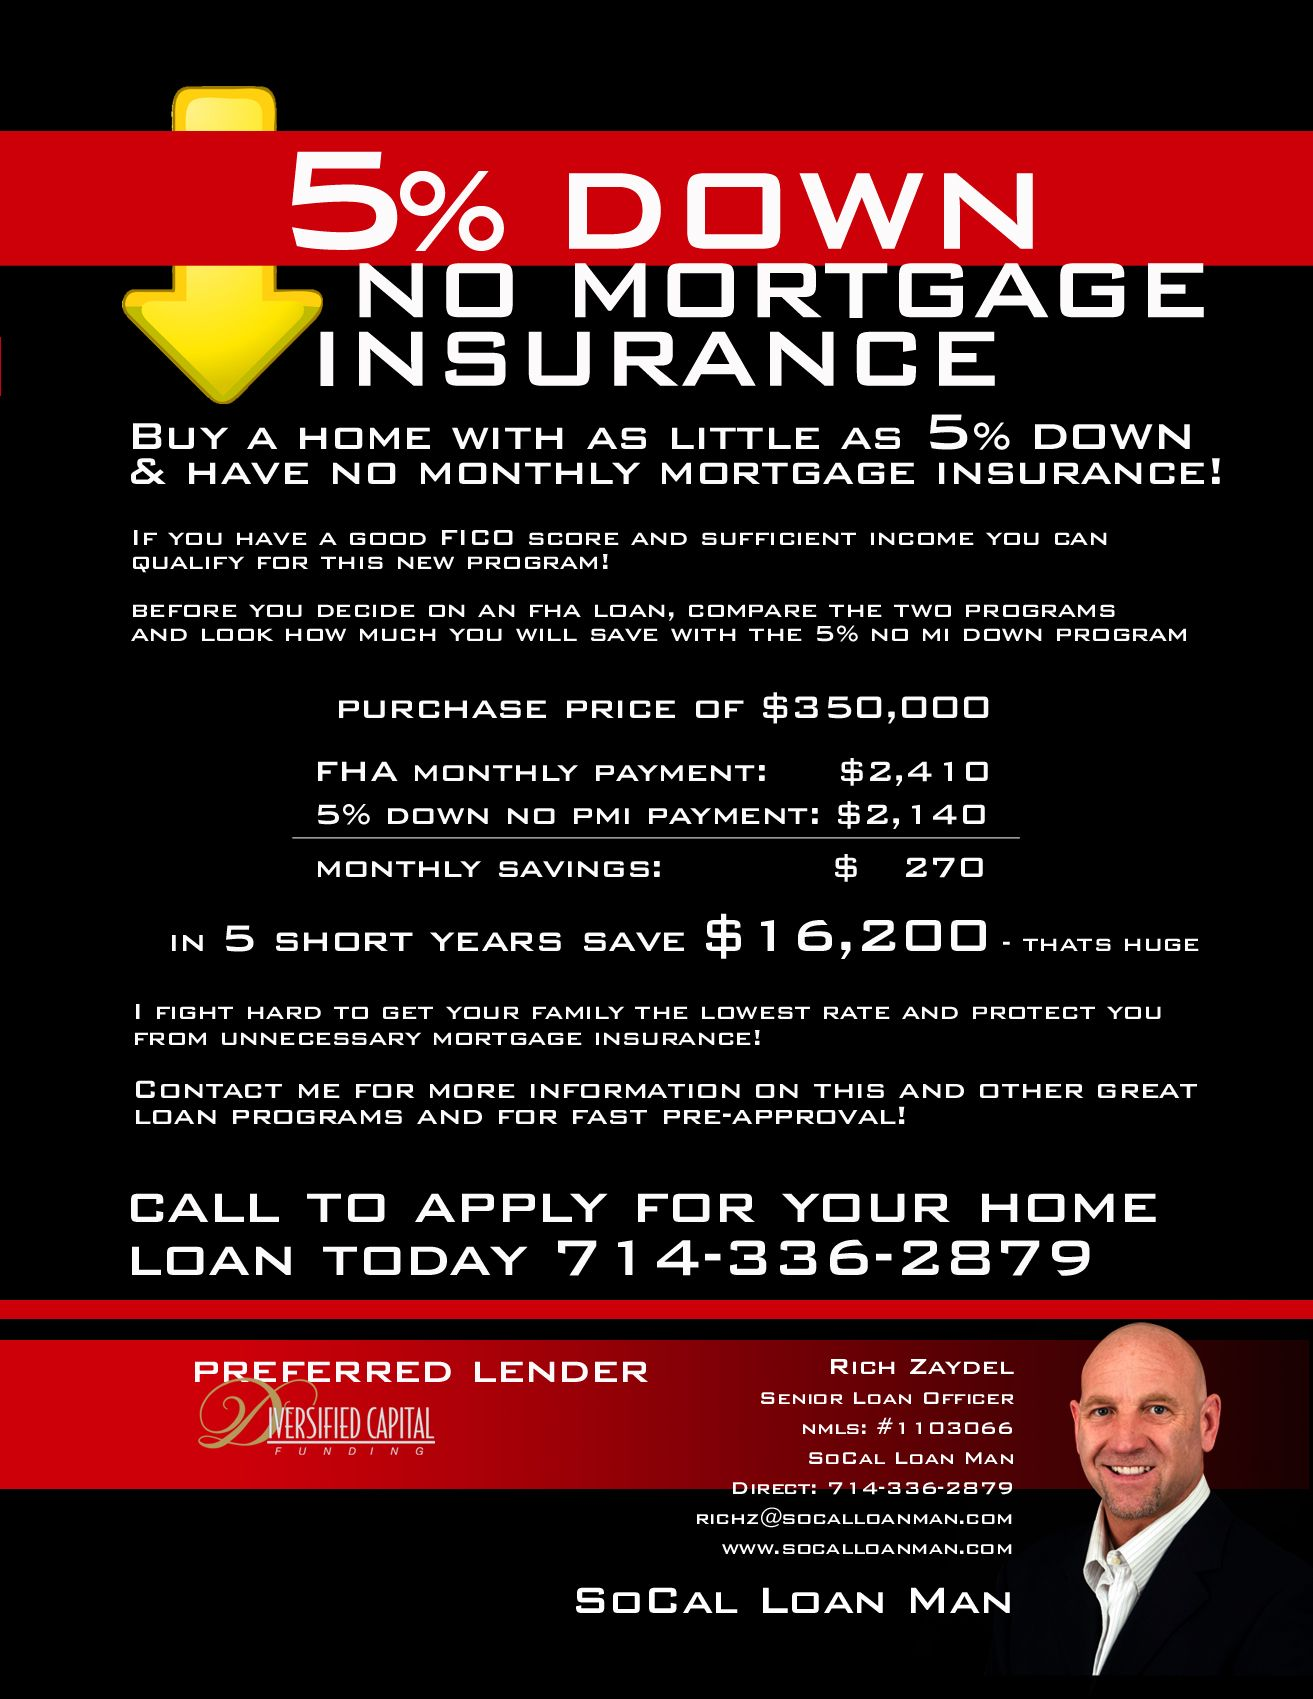 5 Down No Mortgage Insurance Home Loan Program I Will Save